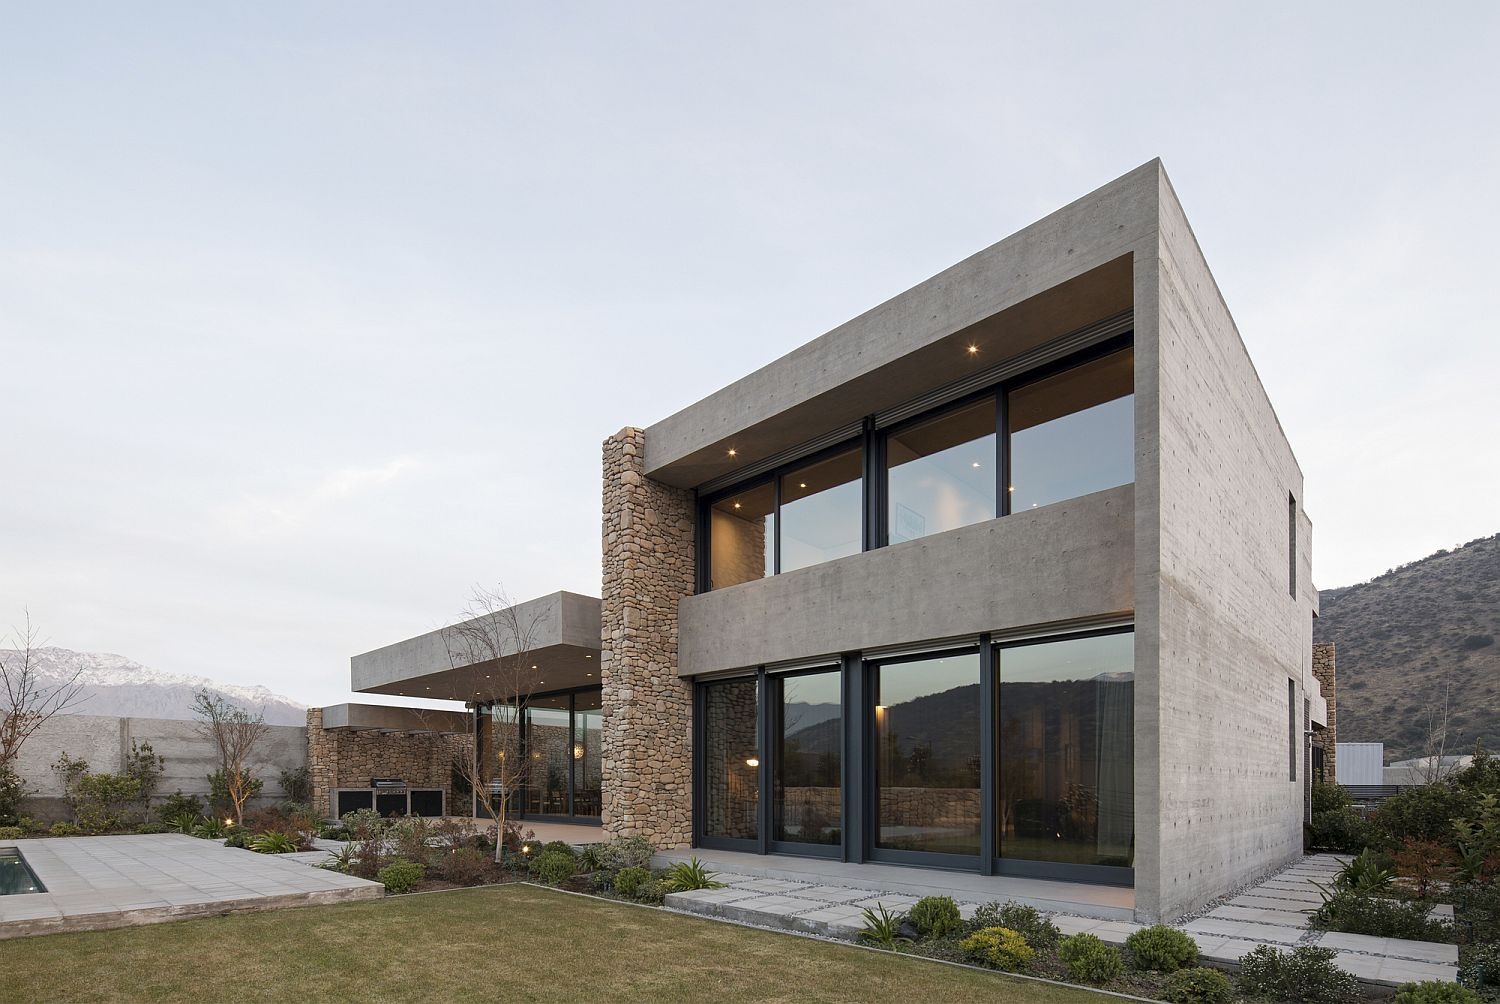 Stone, concrete and glass modern home Cerro la Cruz House